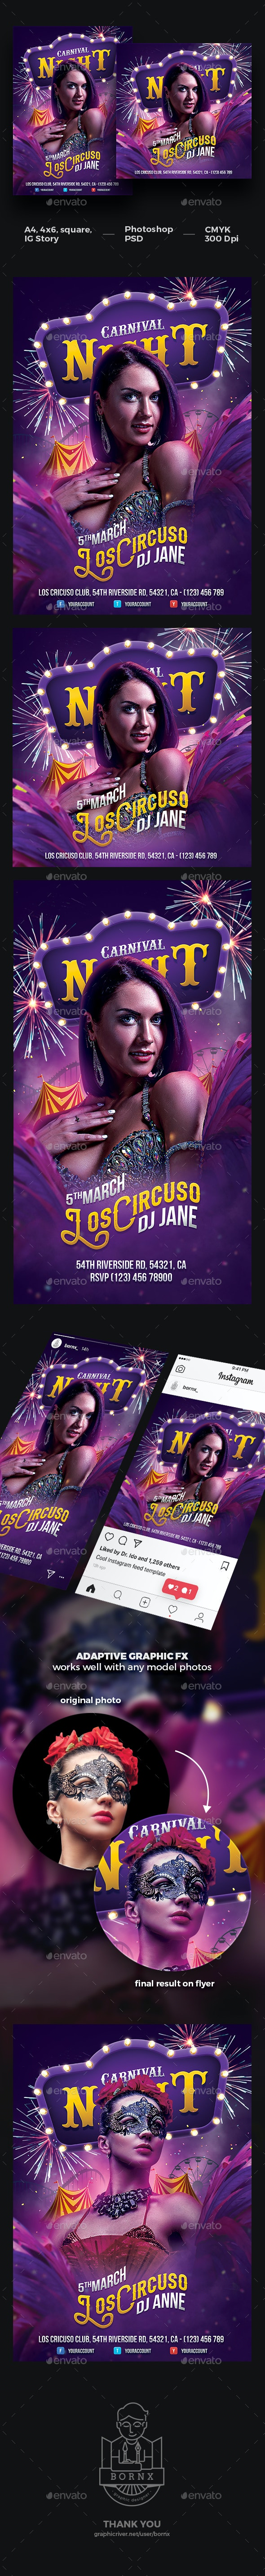 Carnival Party Flyer Template - Clubs & Parties Events